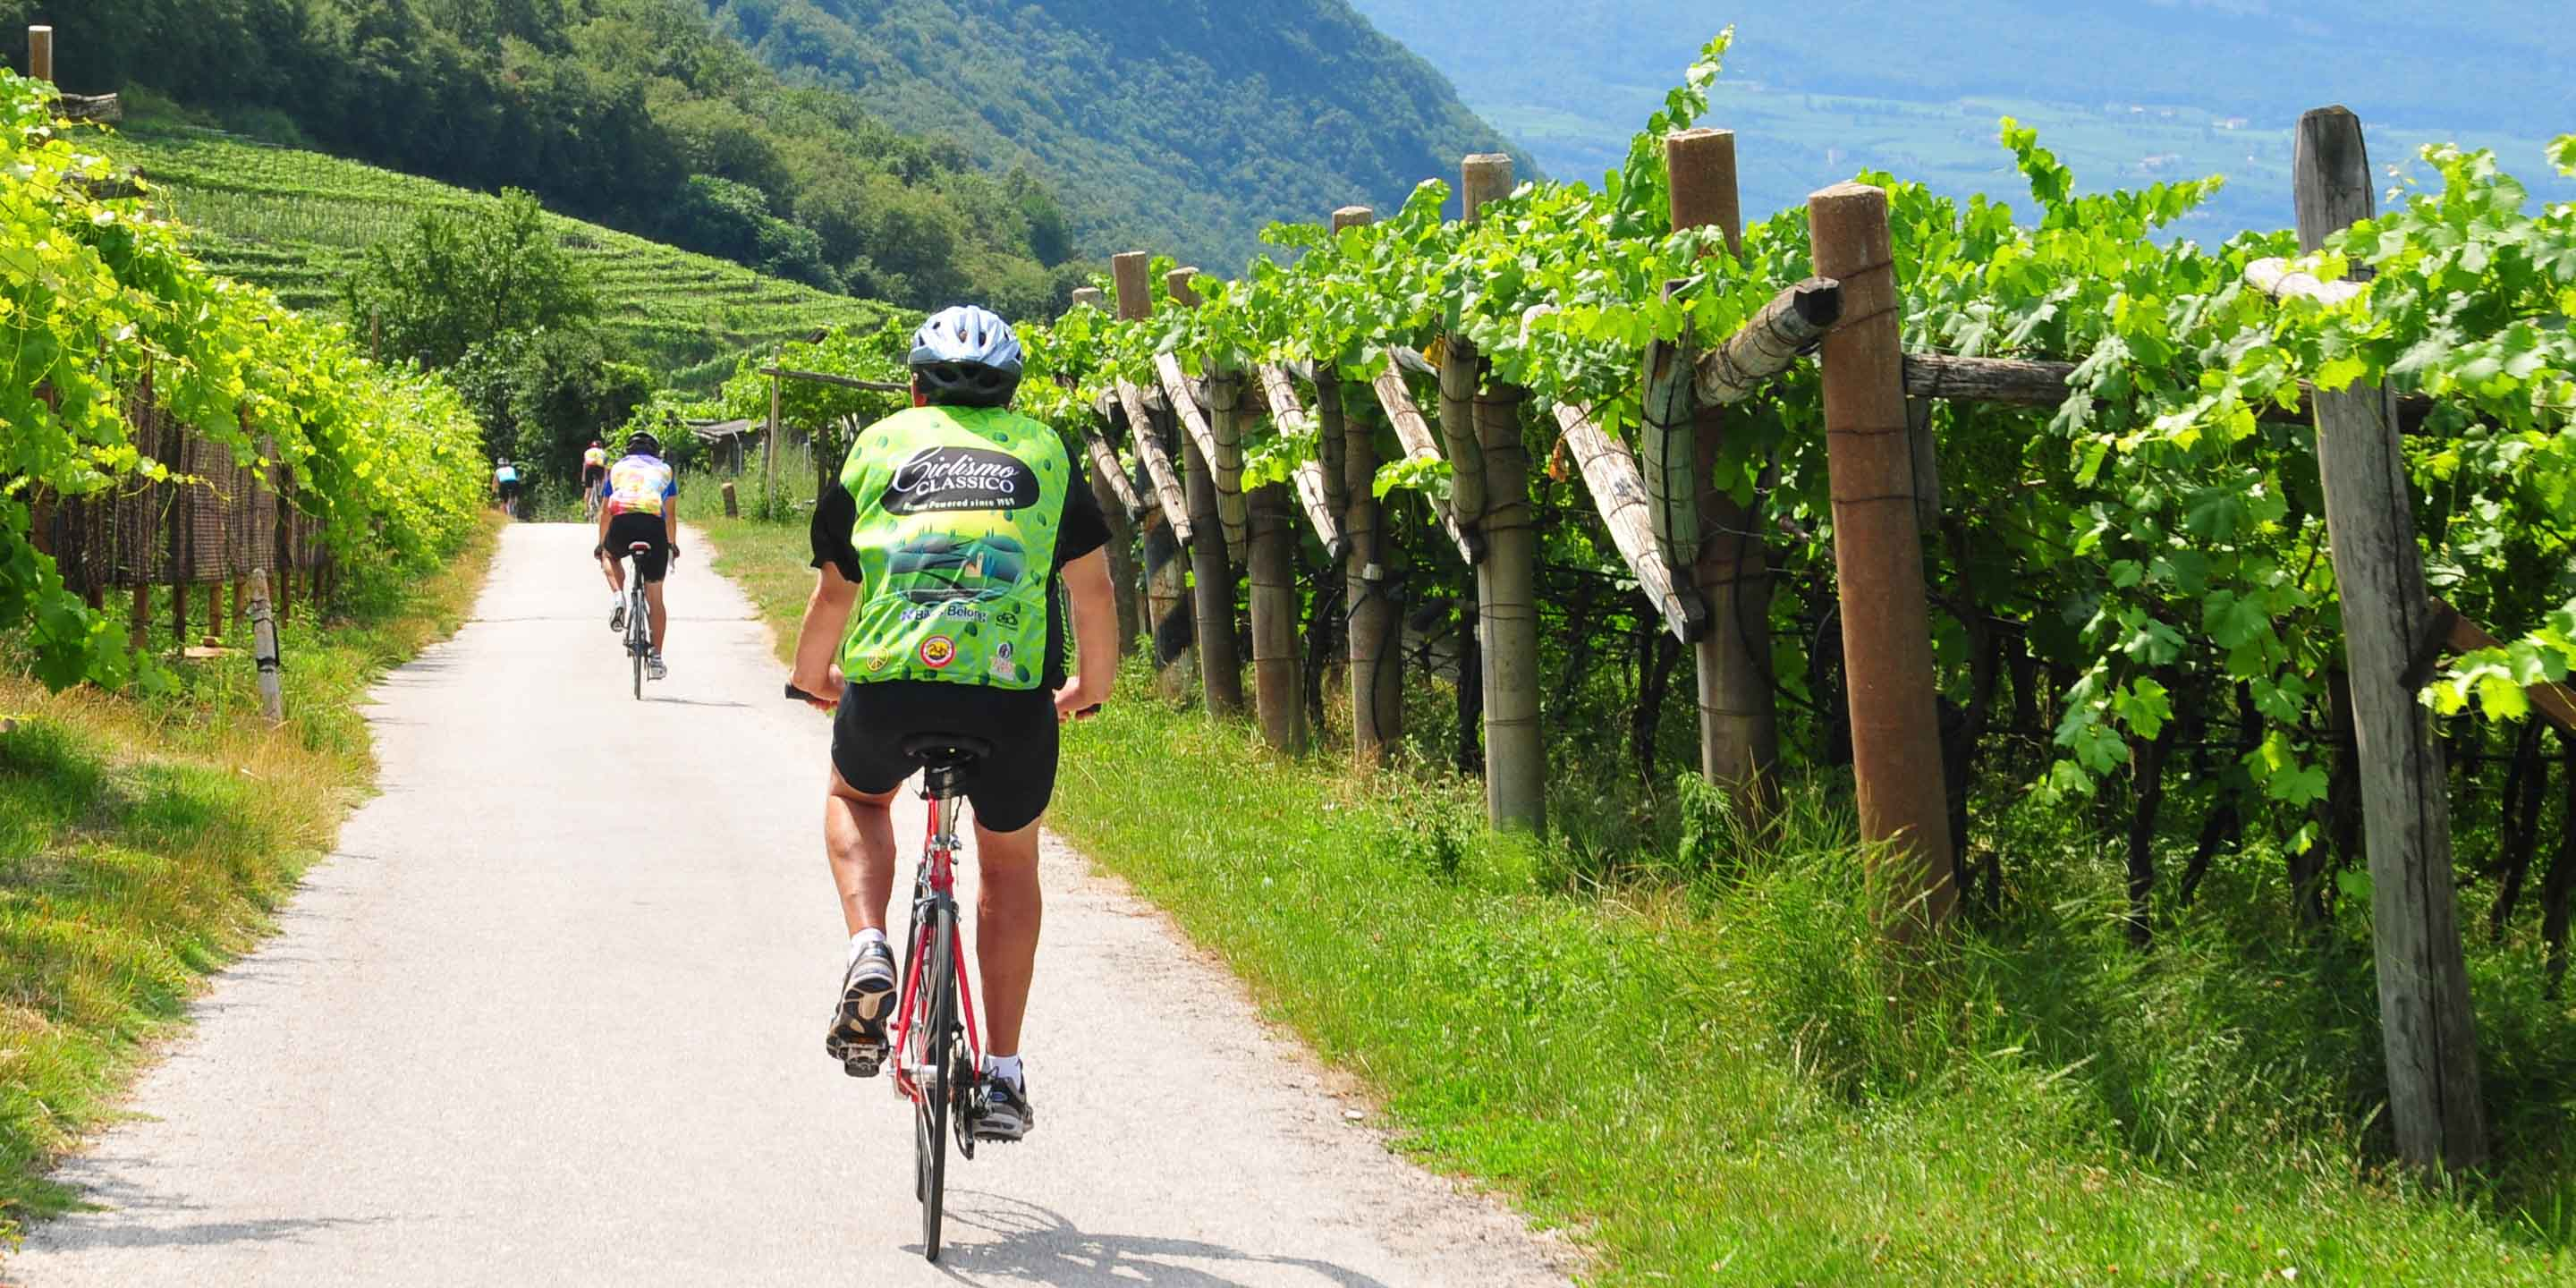 Biking by Sud Tyrol vineyards